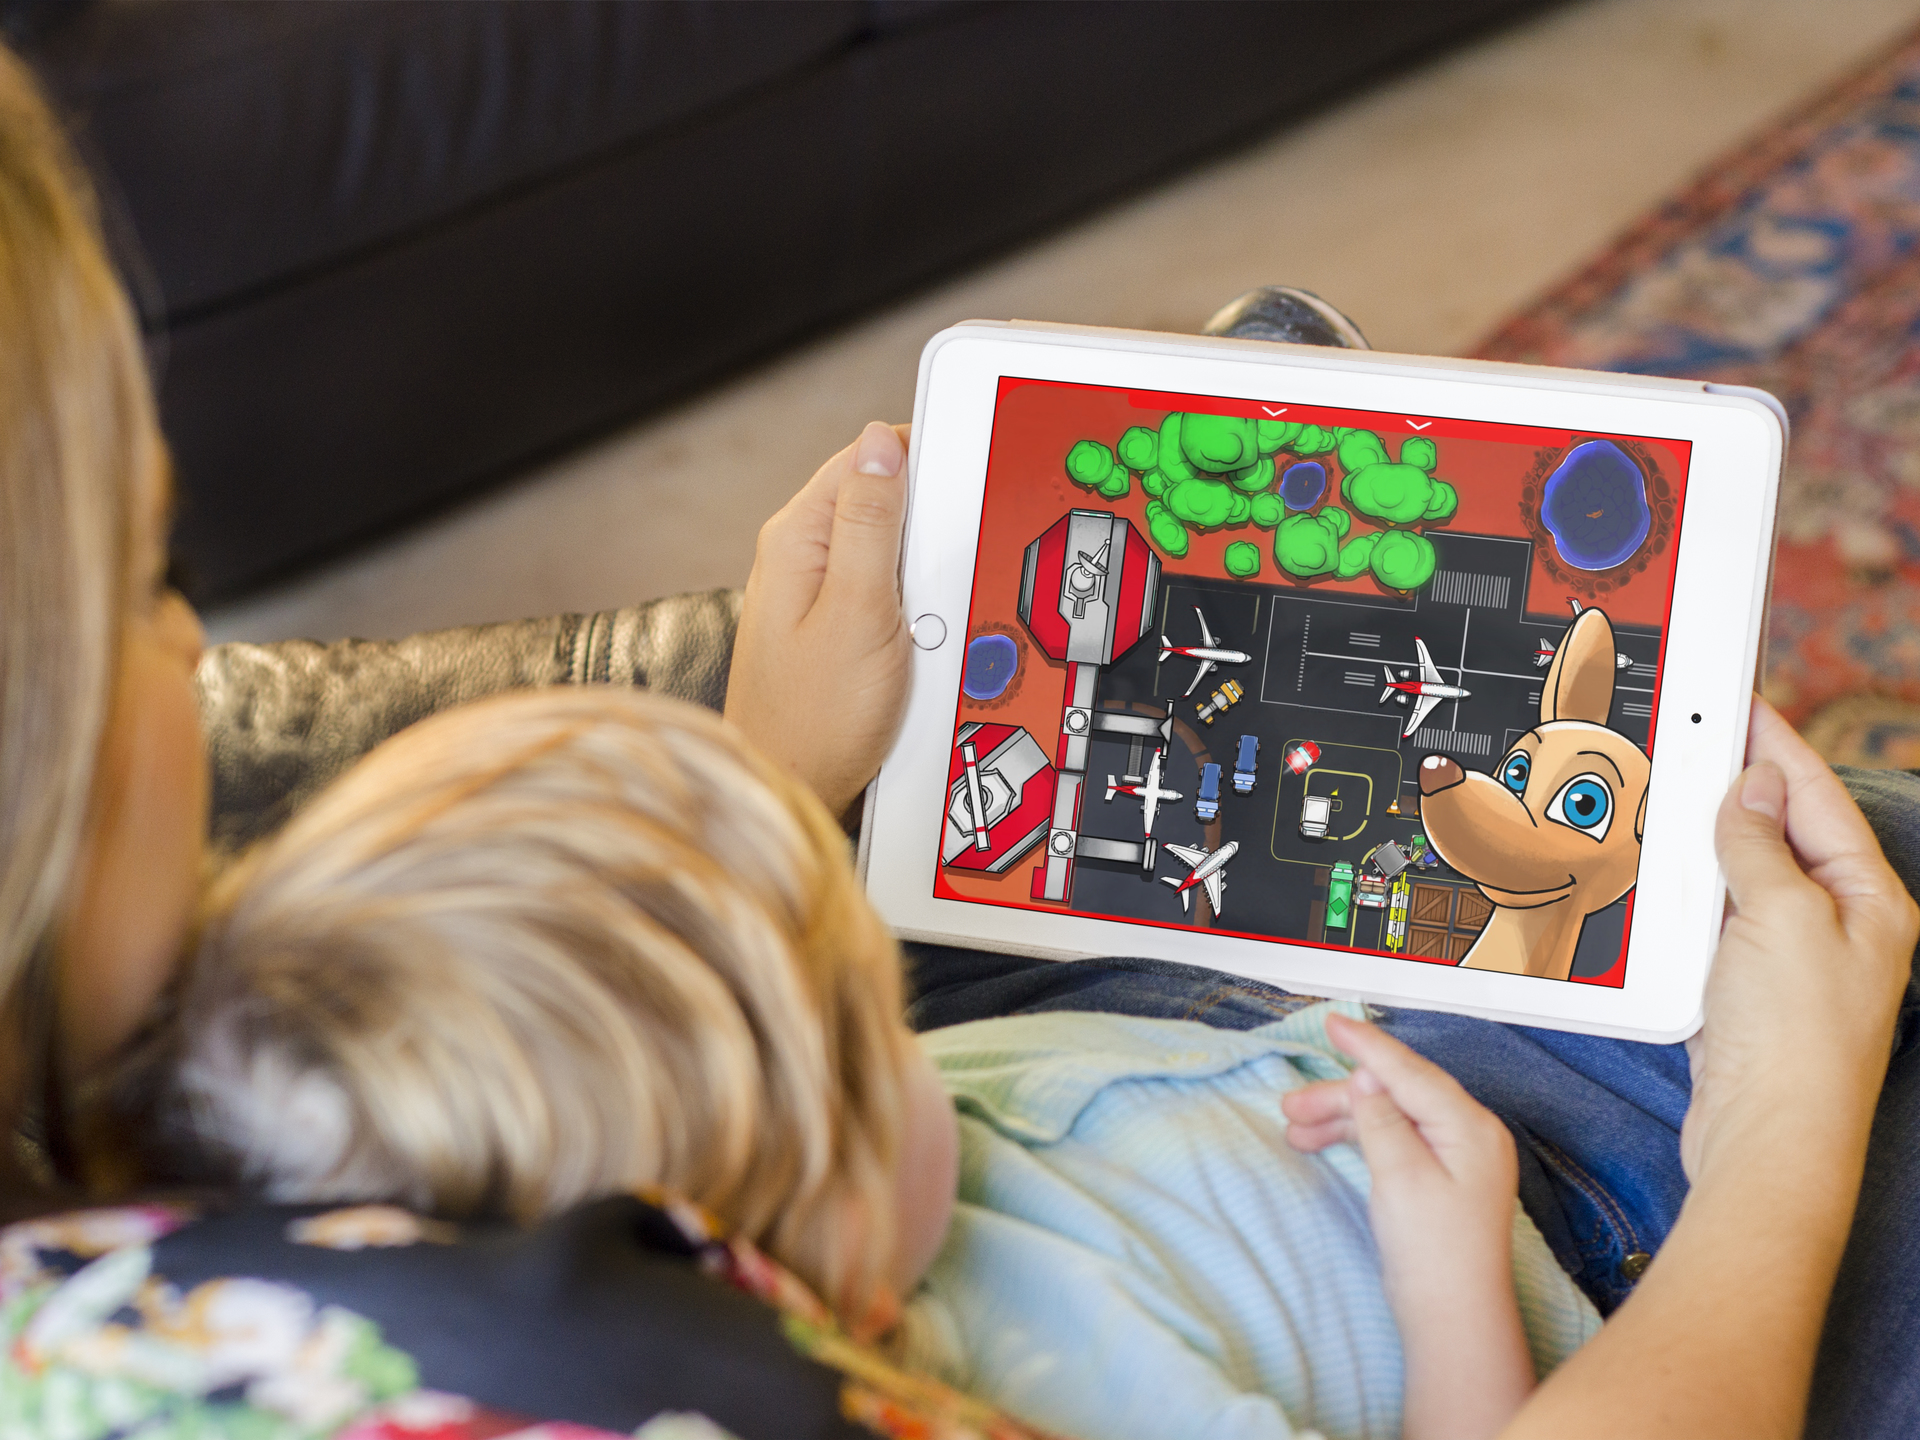 Qantas Joey Playbox - We worked with Qantas to build the Joey Playbox, a free game designed for children 4 to 8 years old to play creatively and freely.We worked closely with Qantas to adhere to their brand guidelines and image, while building a fun, engaging game for children that encourages creativity and creation.iPad Game/ Built with Unity